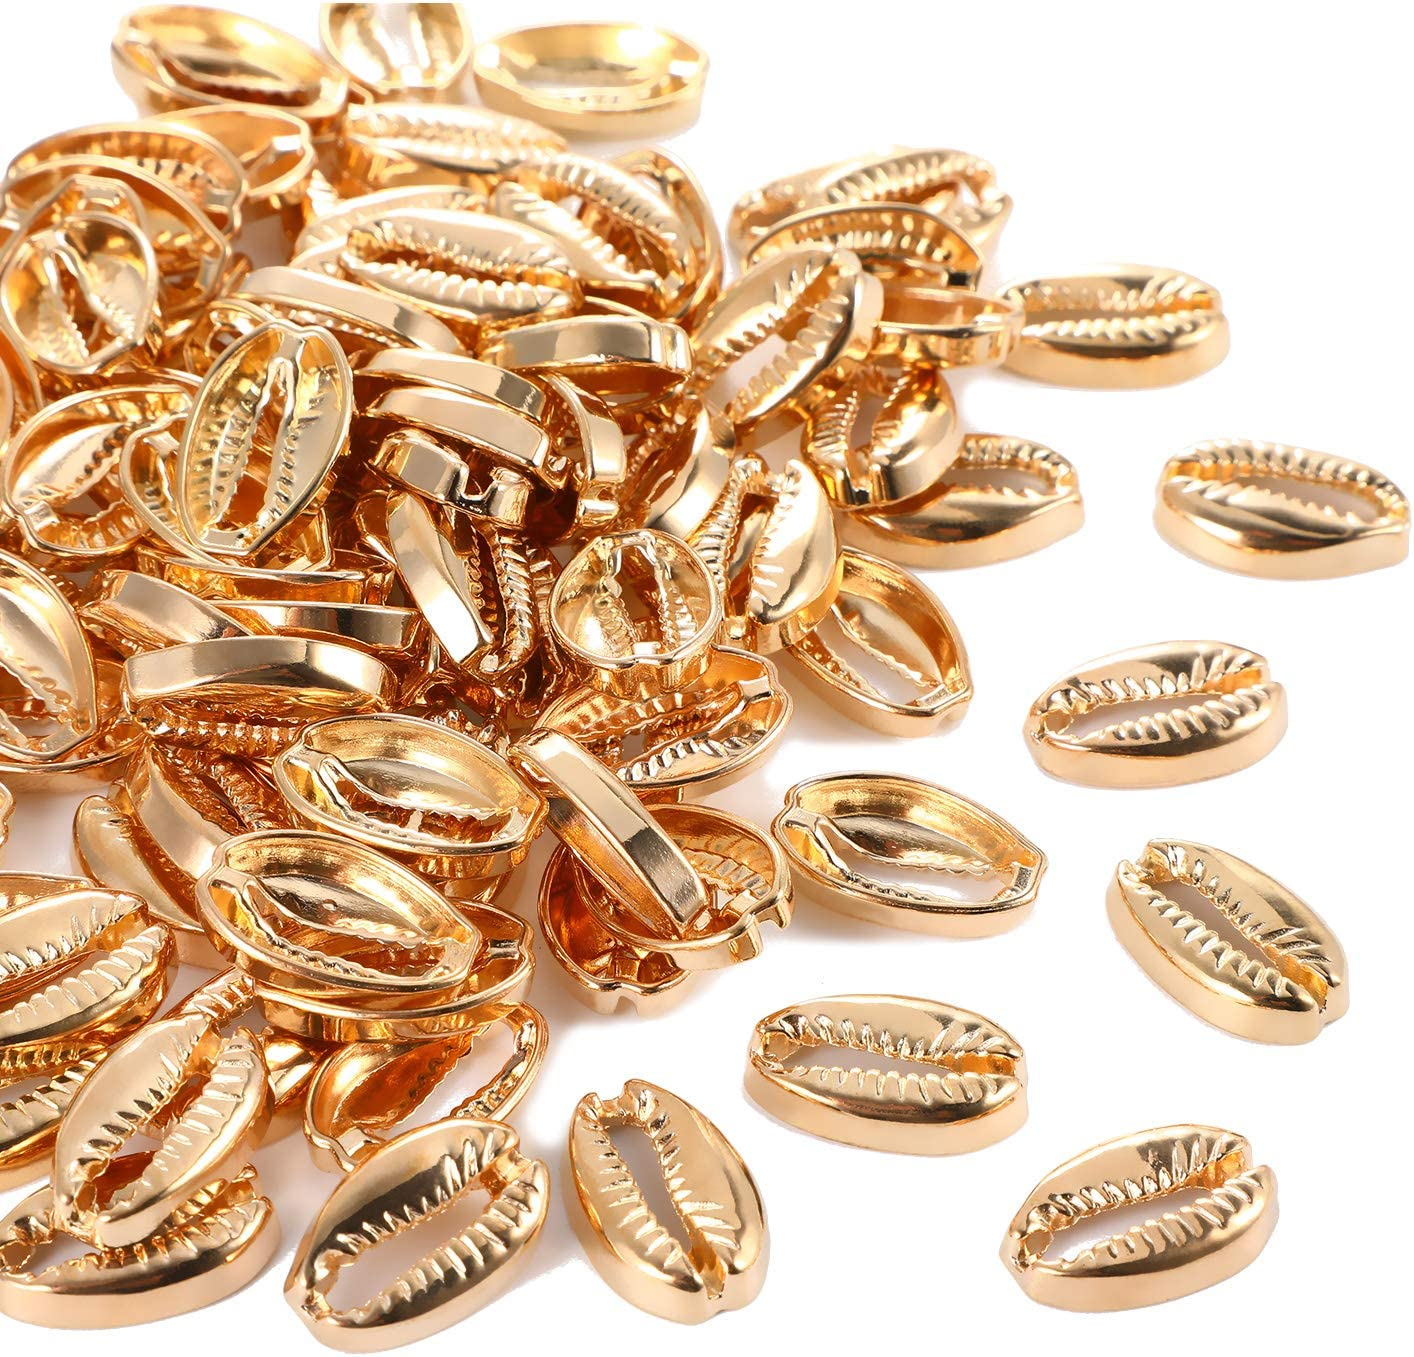 10 pcs 13 x 15 x 8 mm Wholesale Metal White Seashell Charms Charms for Necklace Bracelet Anklet Making